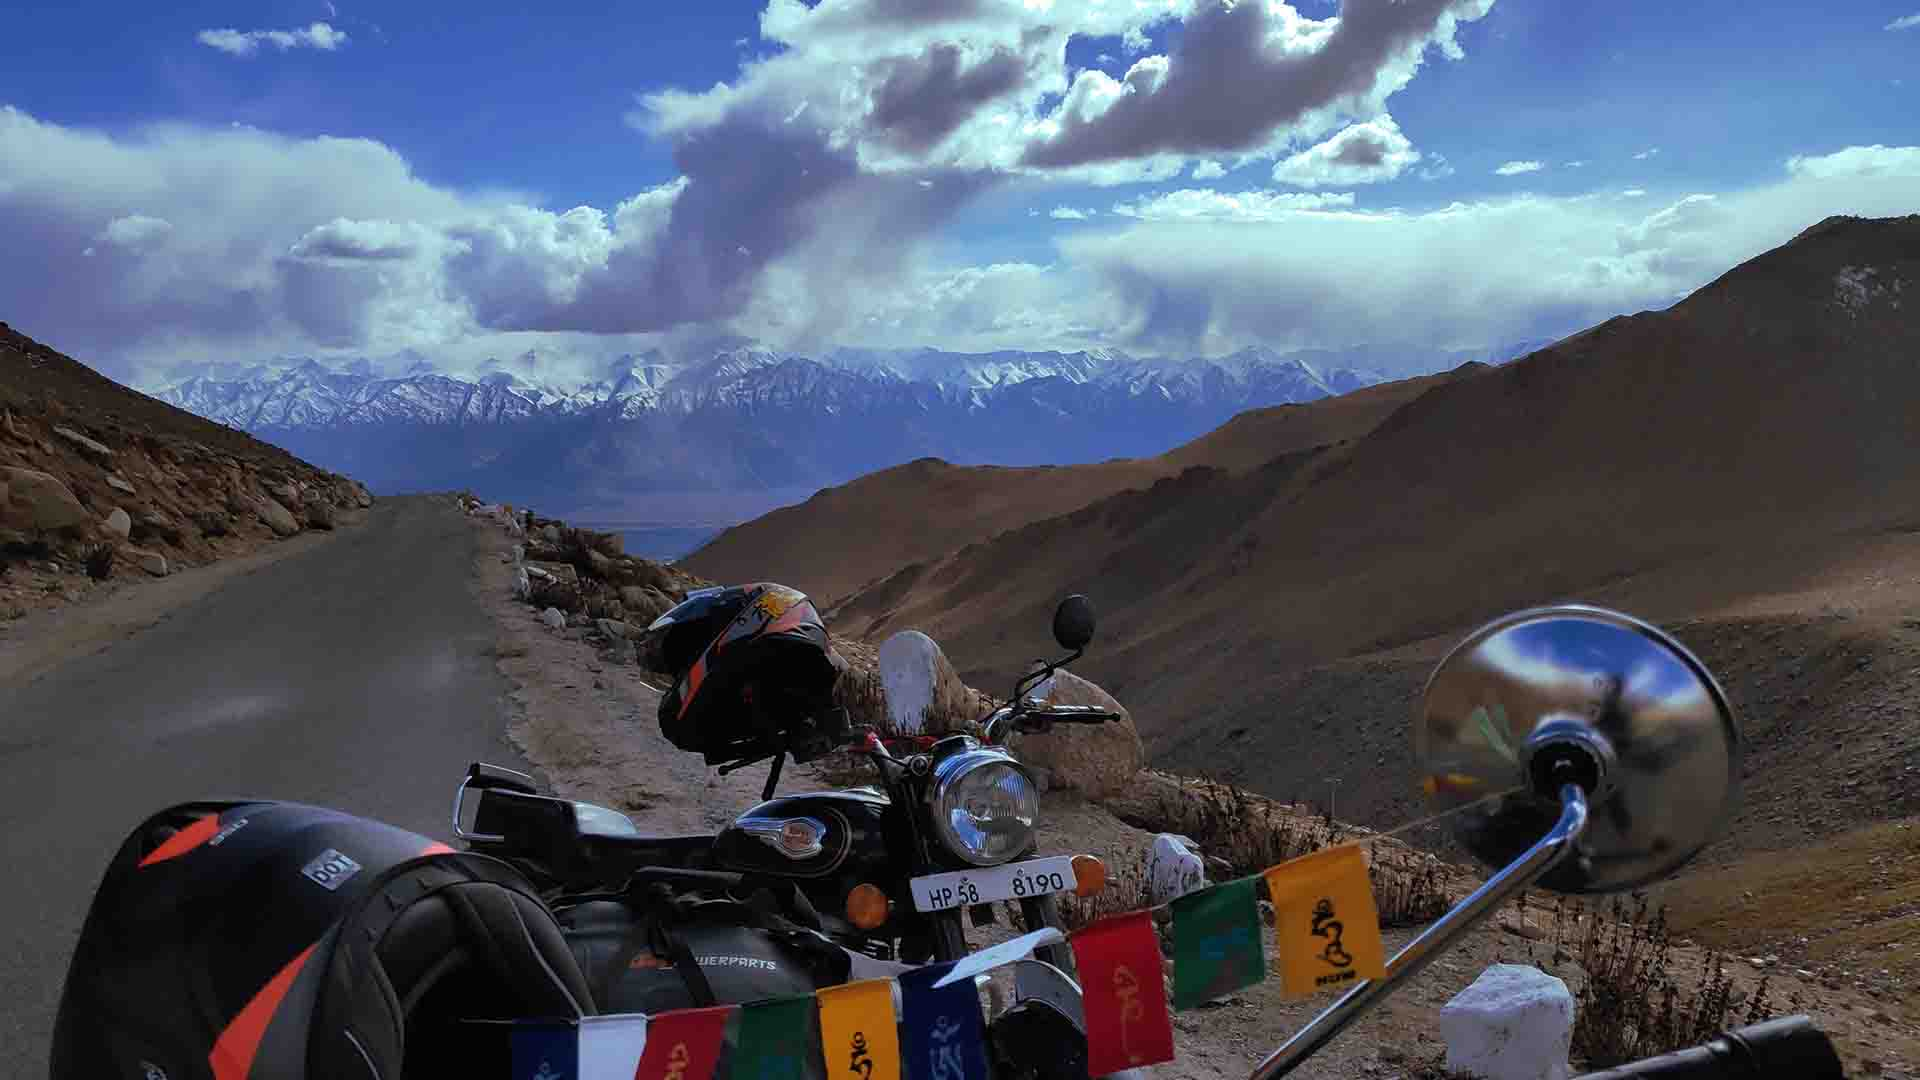 Motorcycle-tours-in-himalayas-india-leh